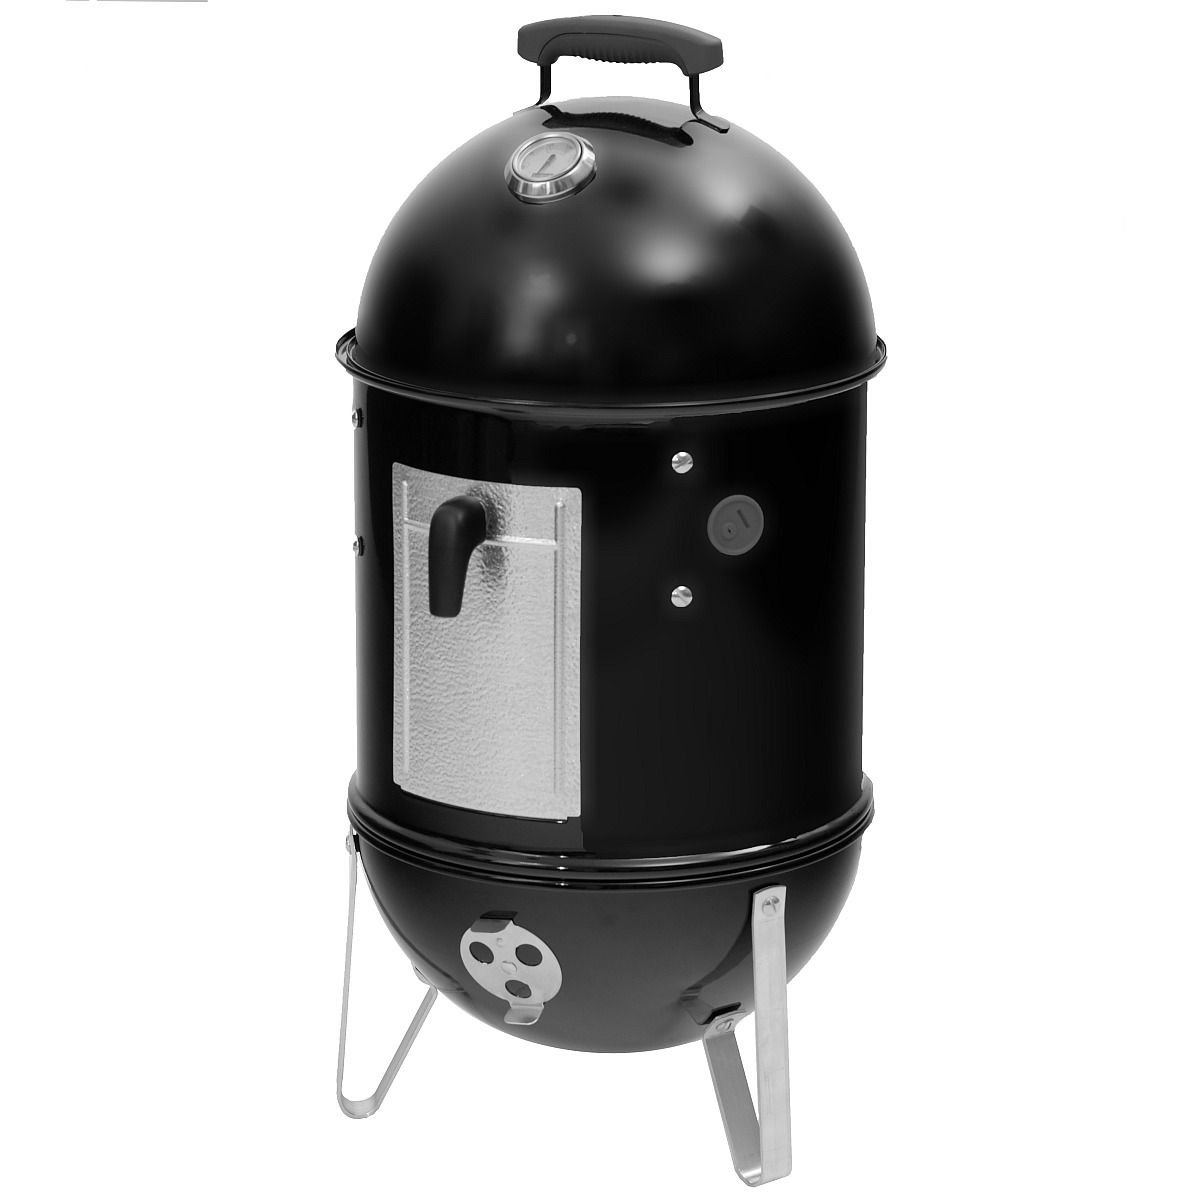 Weber 711004 Smokey Mountain Cooker 37 cm, schwarz